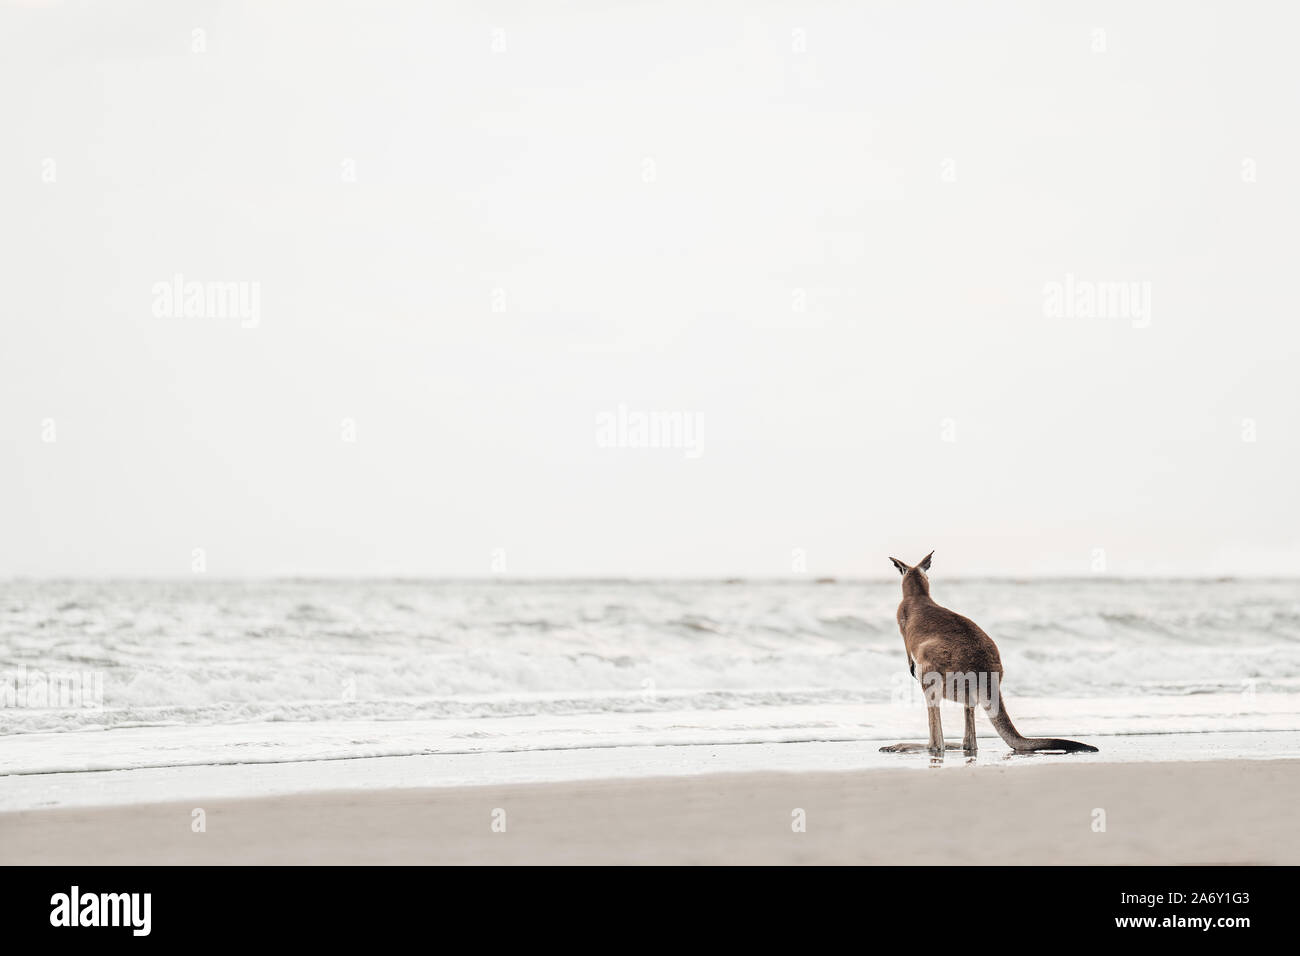 Kangaroo watches the Ocean at the Beach Stock Photo